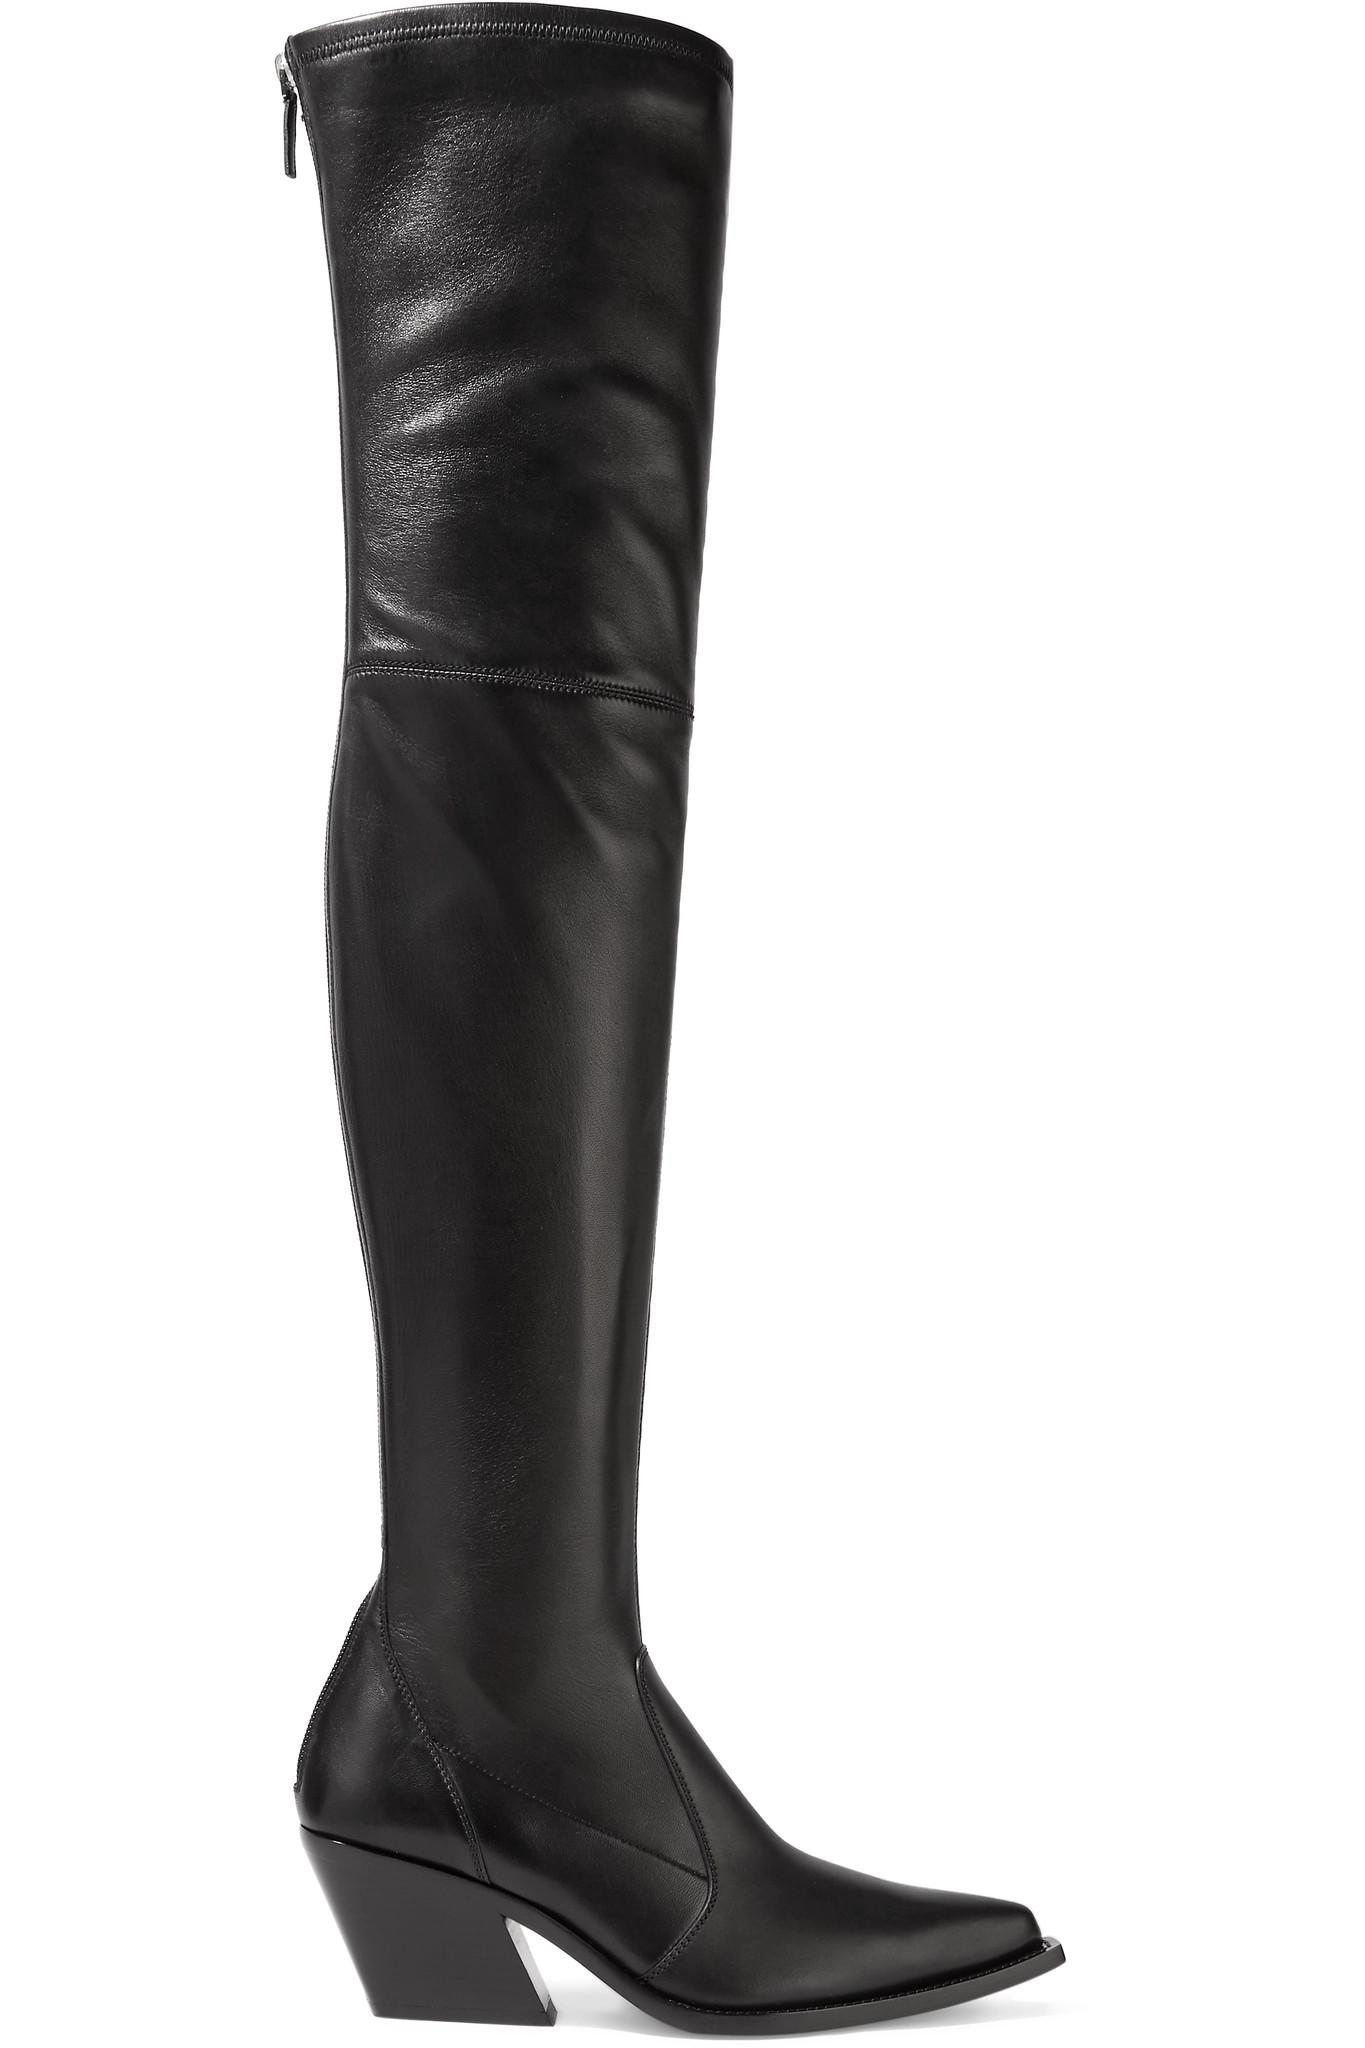 fbecba75b56 Lyst - Givenchy Leather Over-the-knee Sock Boots in Black